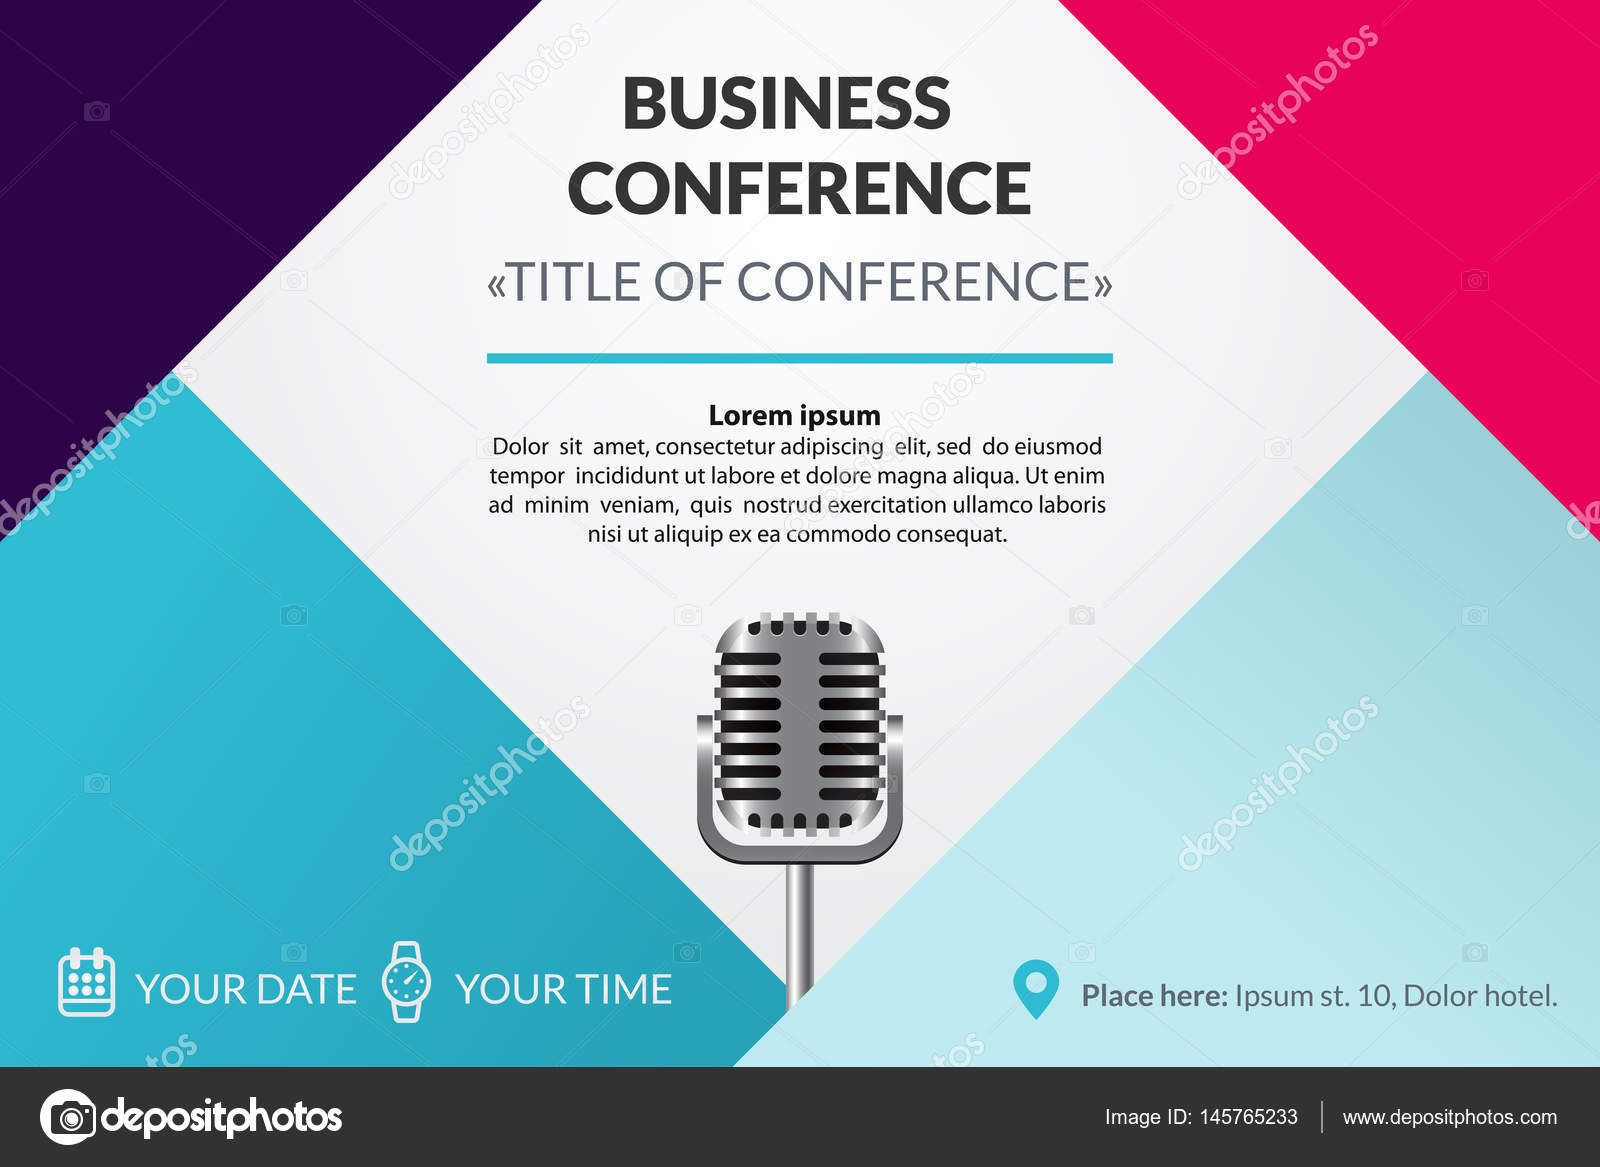 Business conference invitation concept colorful simple geometric business conference invitation concept colorful simple geometric background retro microphone template for banner poster flyer magazine page vector stopboris Image collections